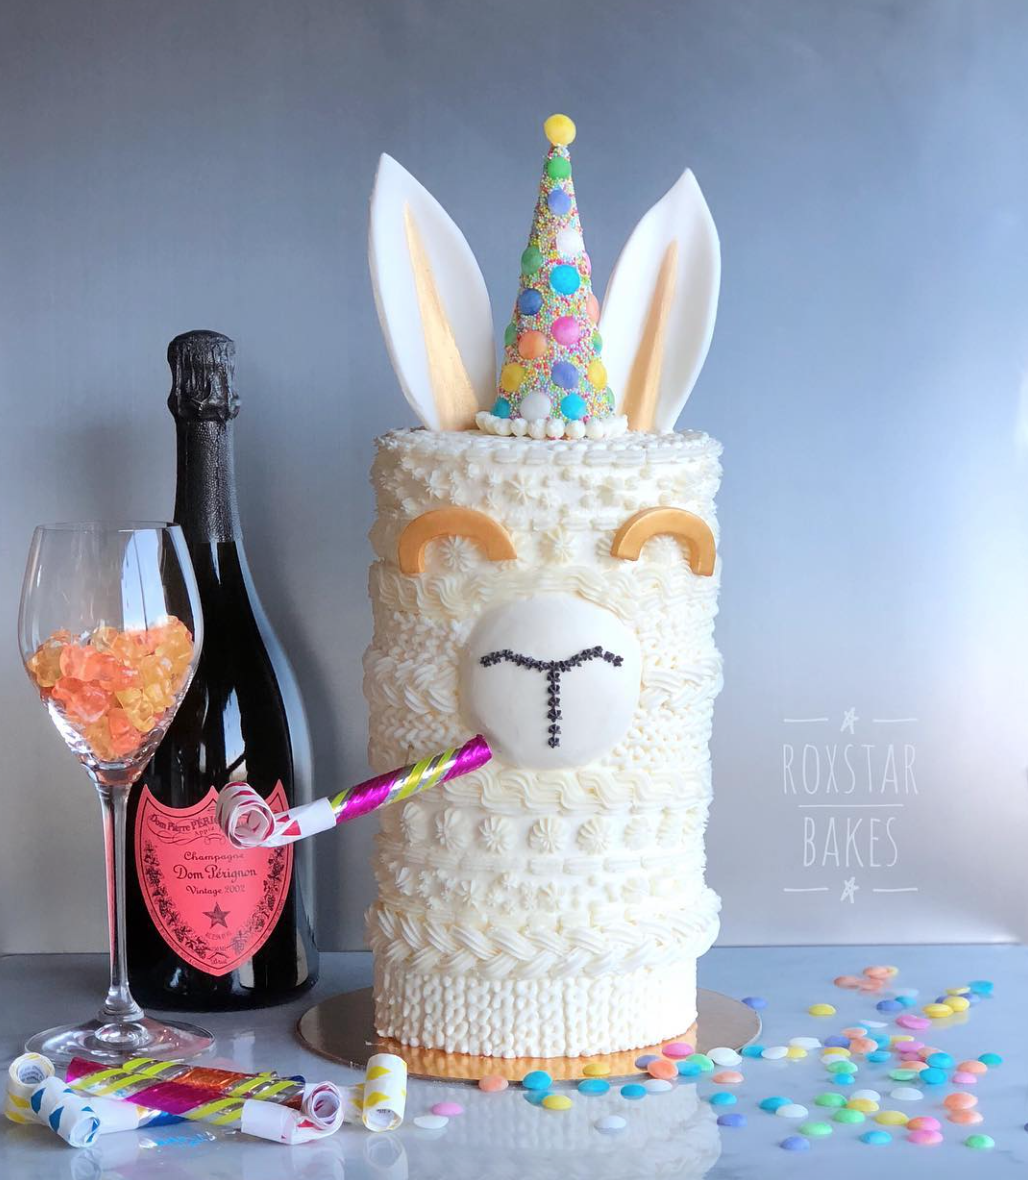 LLama Sweater Cake{ }by Rox Star Bakes (Credit: Rox Star Bakes)